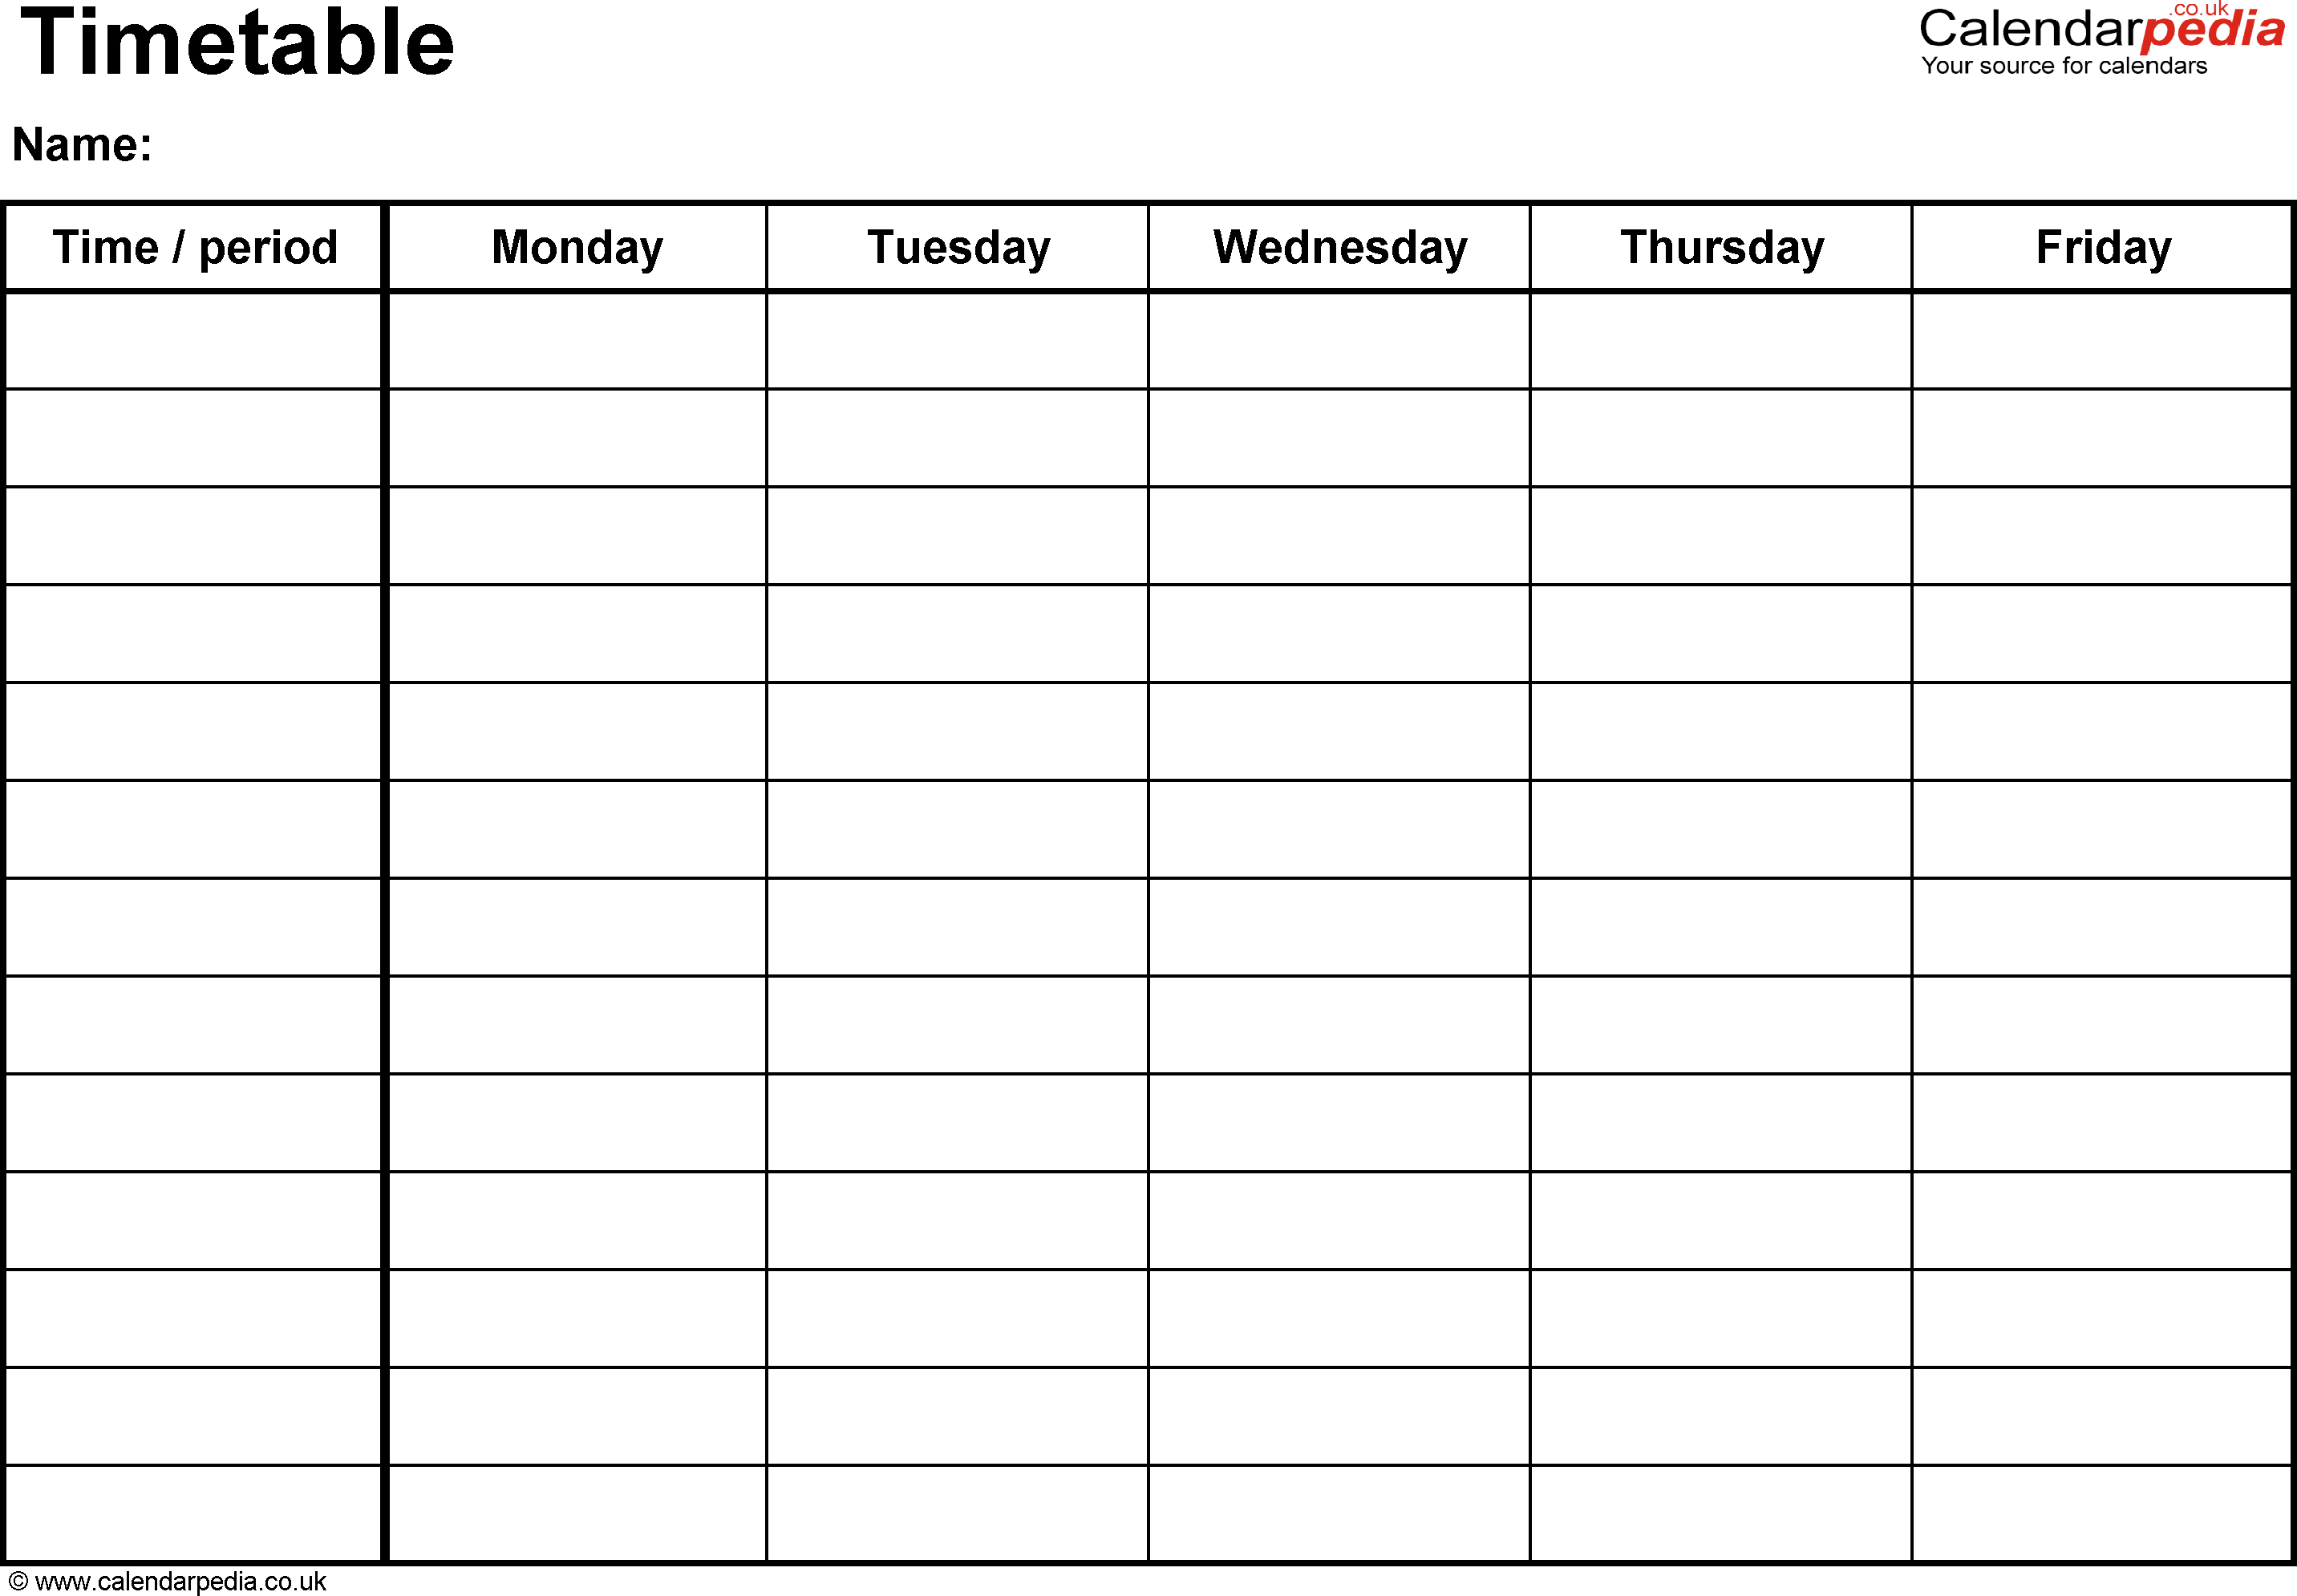 Excel Timetable Template 1: Landscape Format, A4, 1 Page with Calendarpedia Weekly Schedule